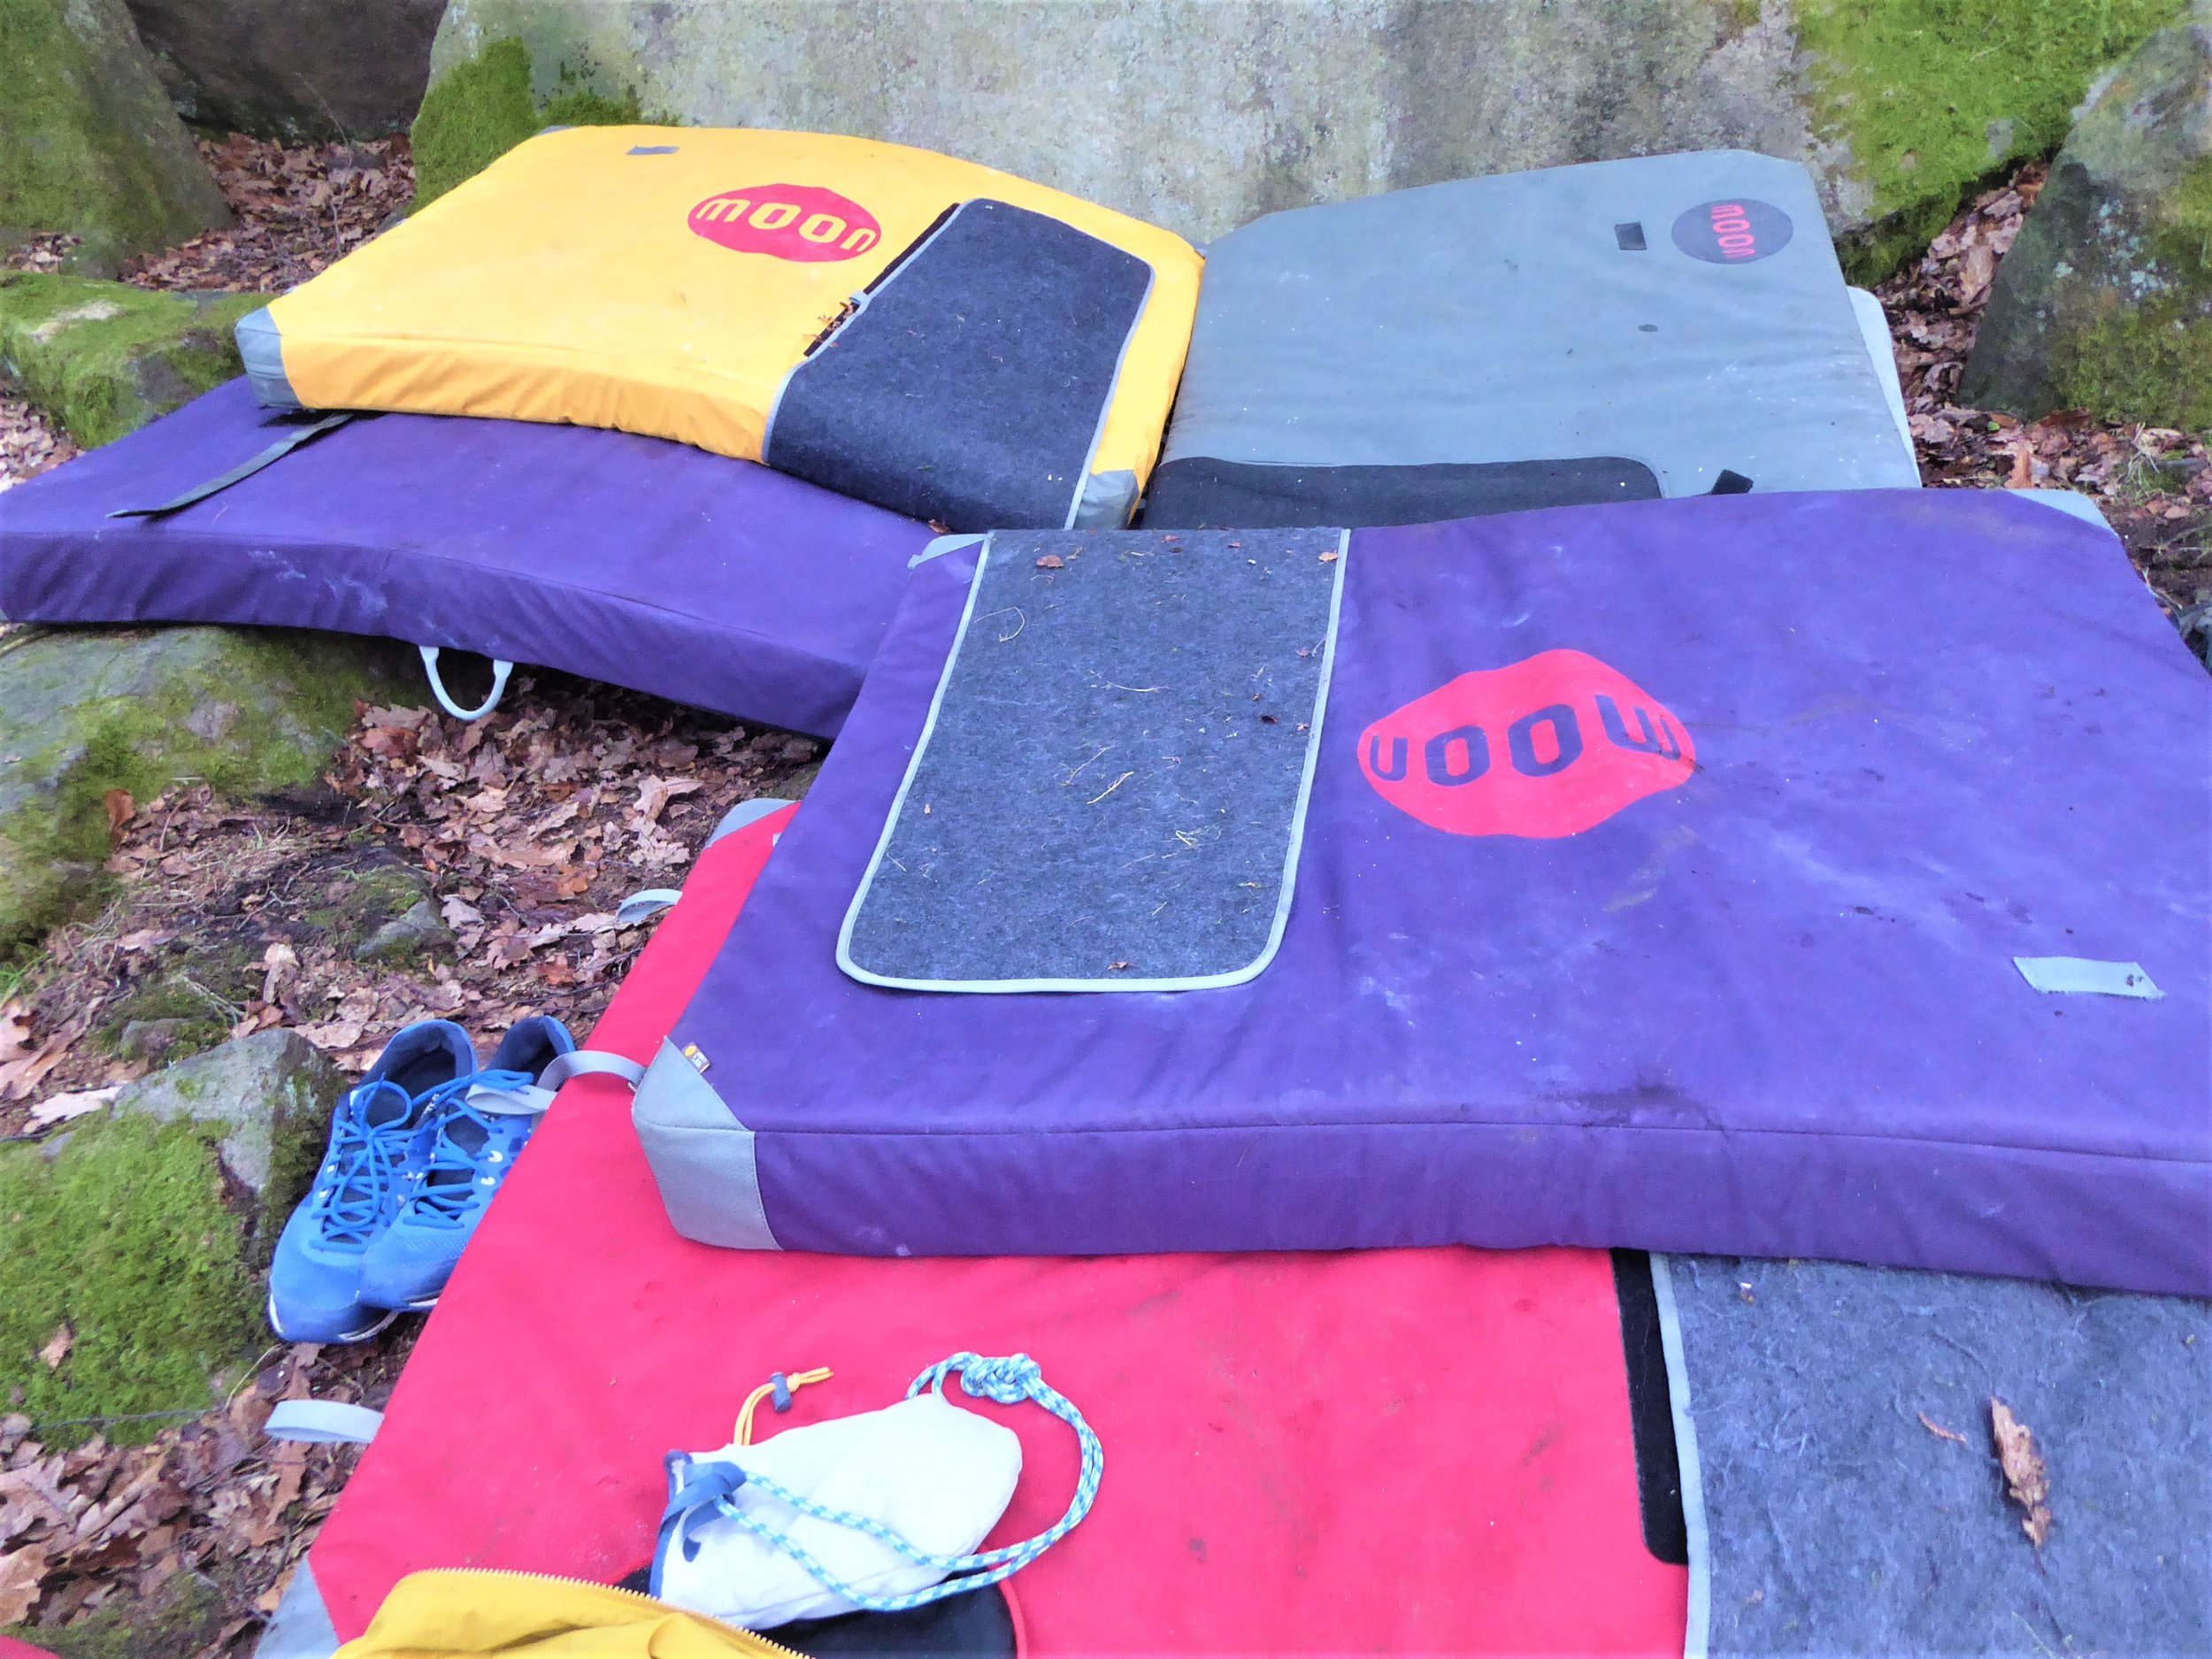 Bouldering Pad Hire - Grab one of our Moon Warrior pads to get out bouldering in the Peak District. Great if you are visiting Sheffield, starting out, or just need an extra pad for your project.